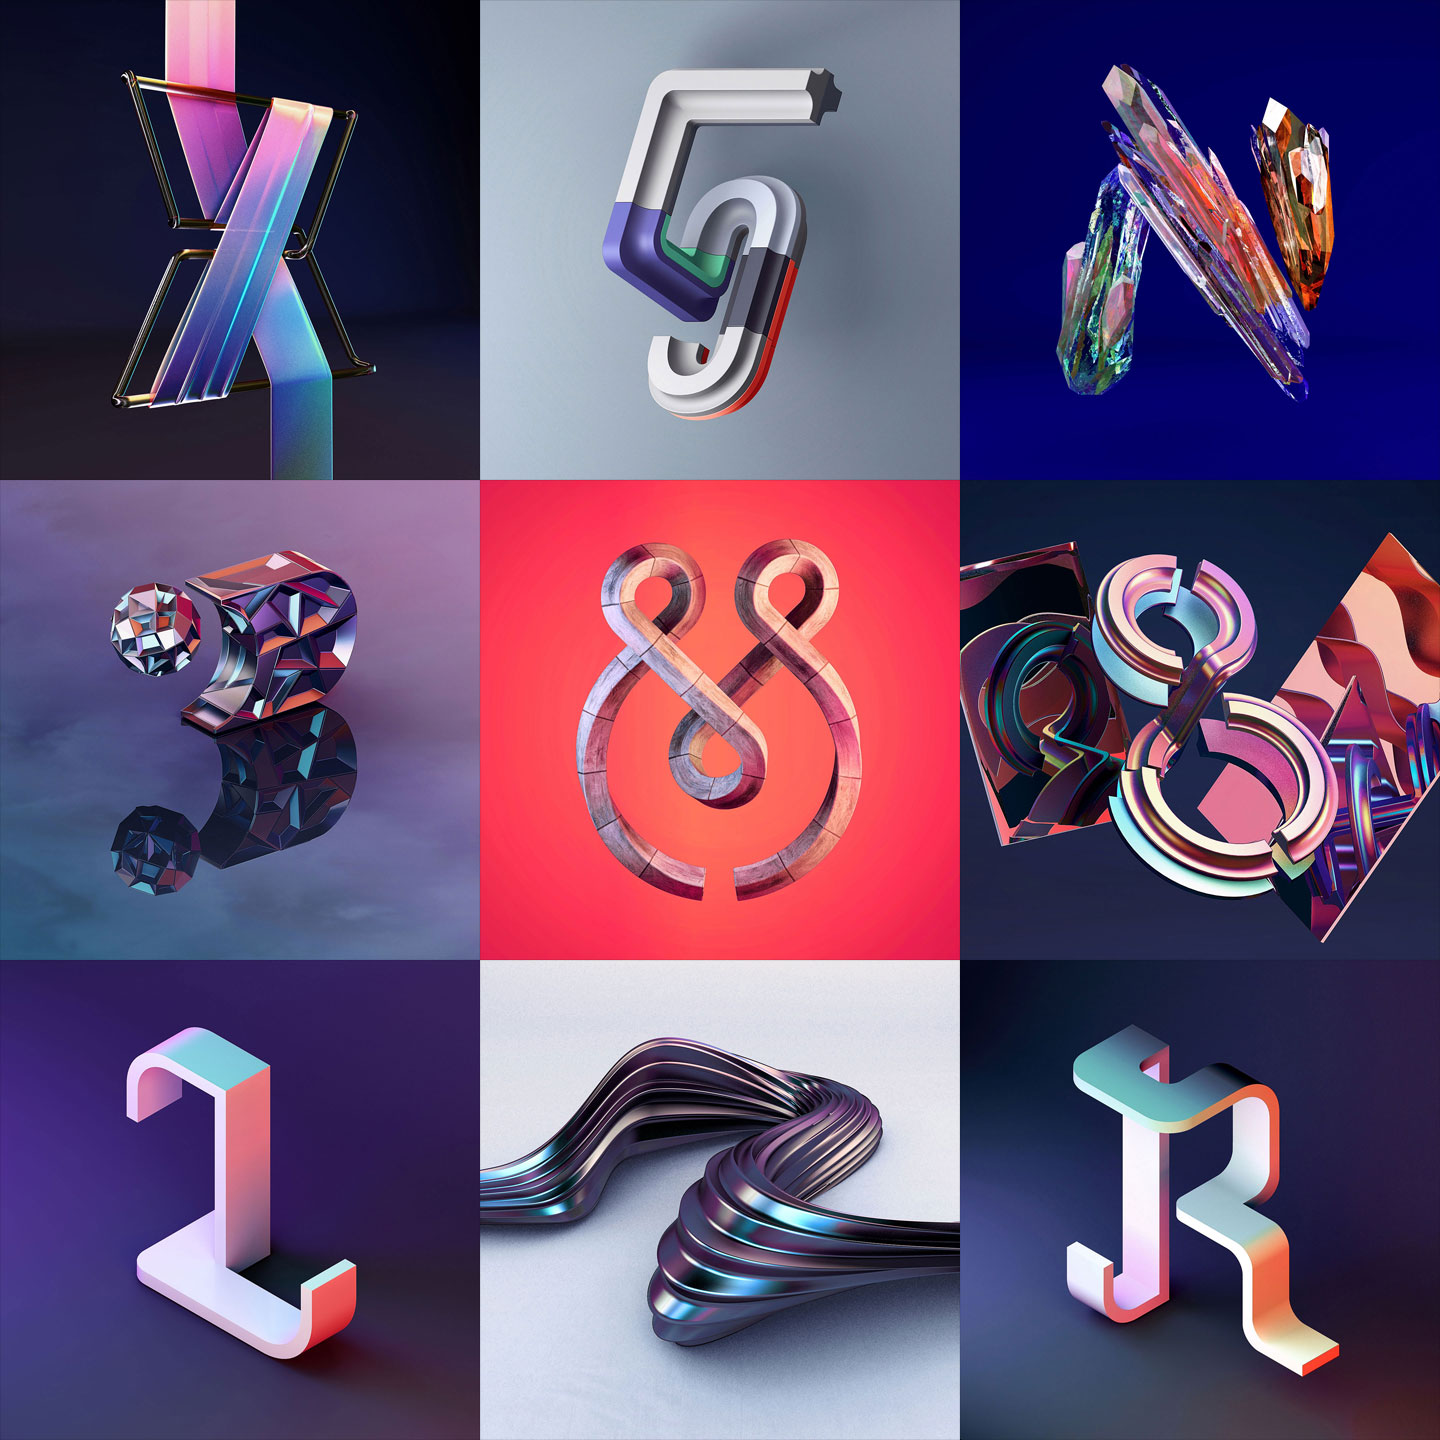 36 Days of Type 2016 - 3D typography selected letters and numbers by Singapore based brand strategy and creative design consultancy, BÜRO UFHO.